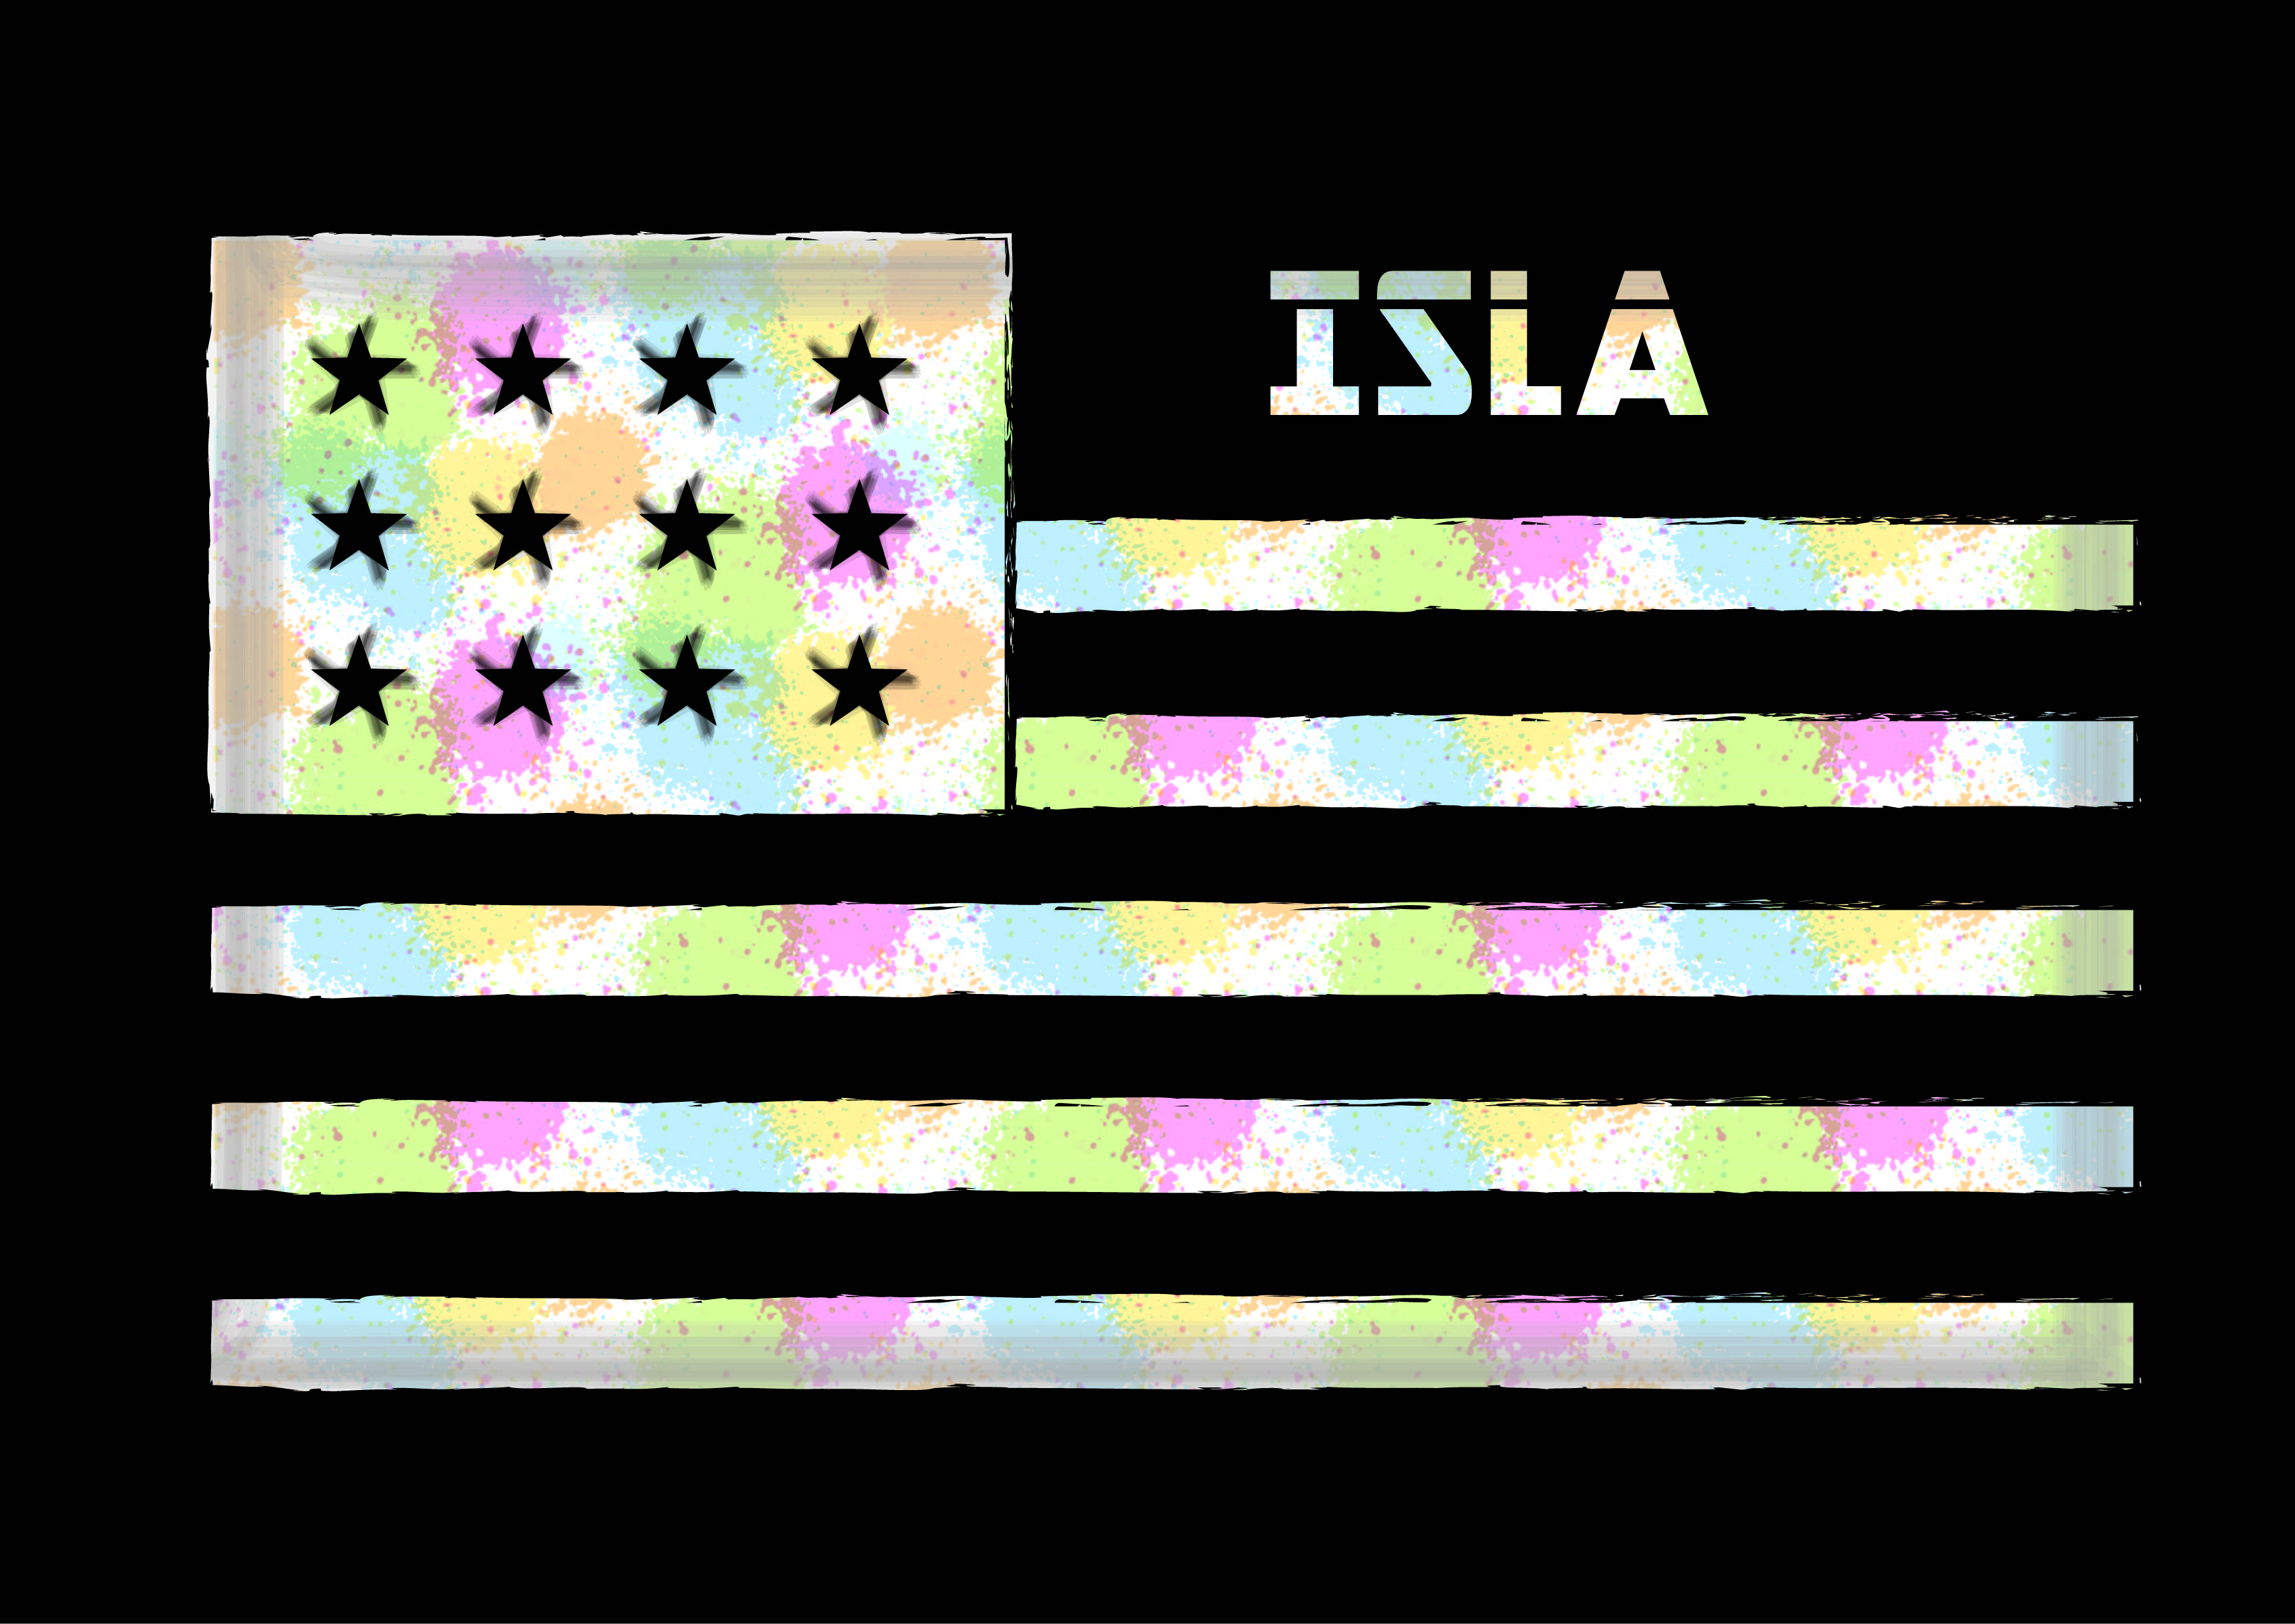 Download Free Isla Graphic By Shirtgraphic Creative Fabrica for Cricut Explore, Silhouette and other cutting machines.